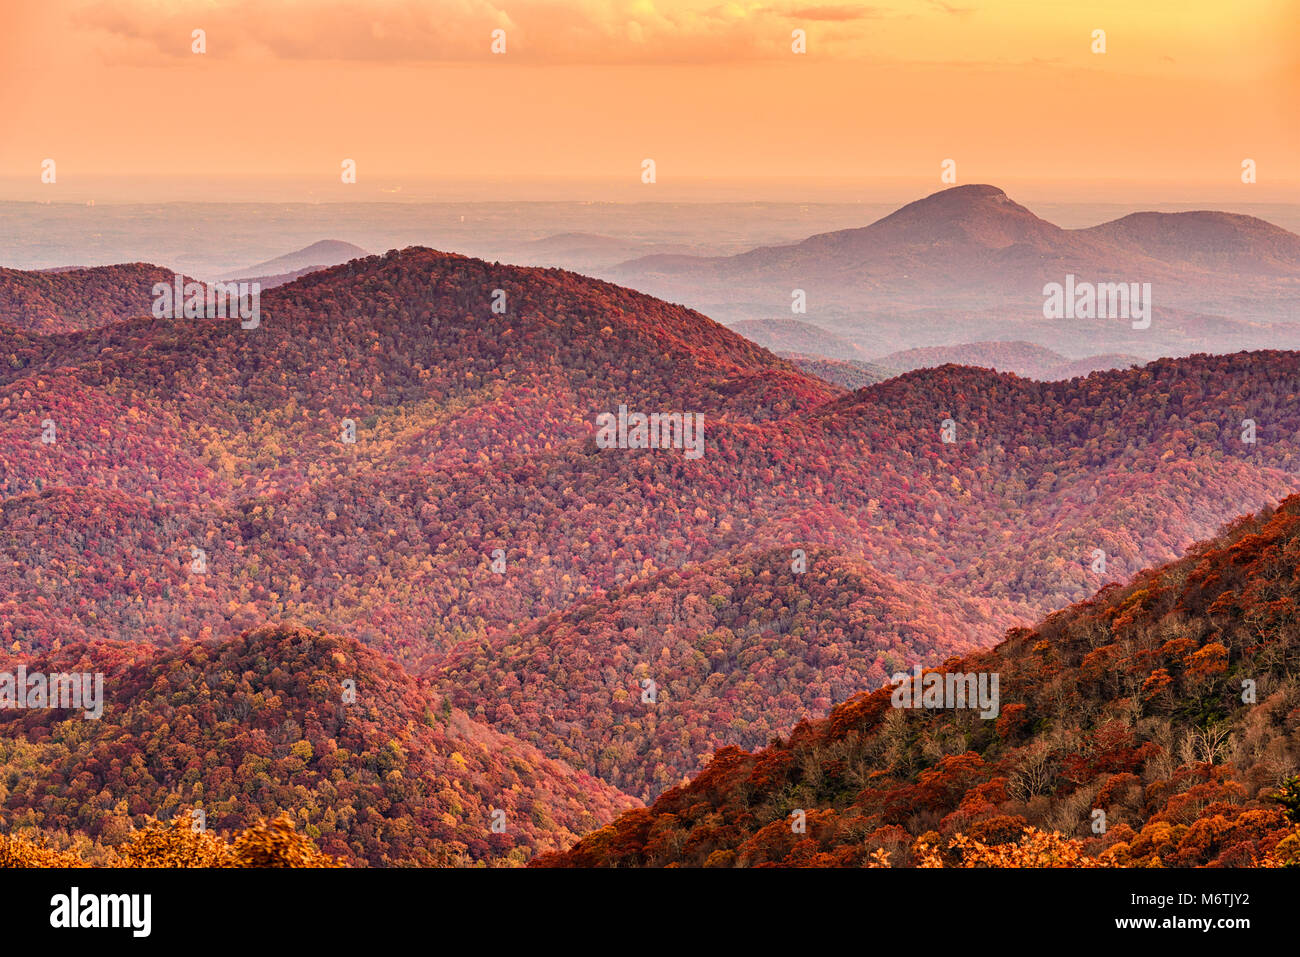 Brasstown Bald, Georgia, USA view of Blue Ridge Mountains towards Blood Mountain in autumn. - Stock Image